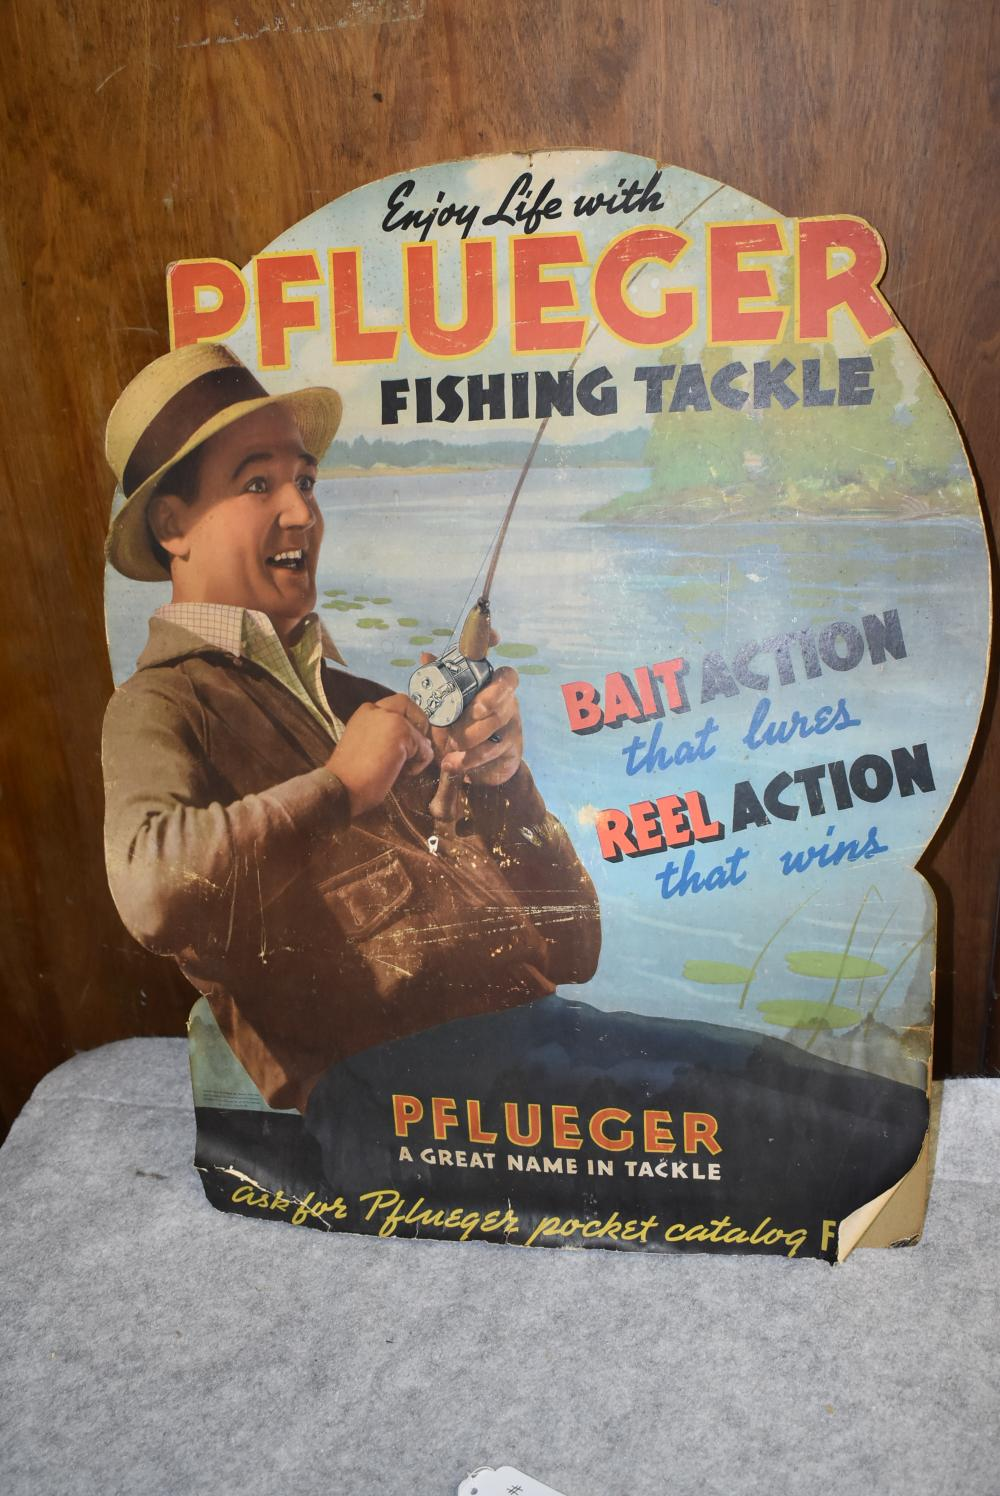 Pflueger die cut cardboard fishing tackle display. Original display w some damage on the bottom. Some small paper chips and Scratches in the center. Display has the easel back display stand